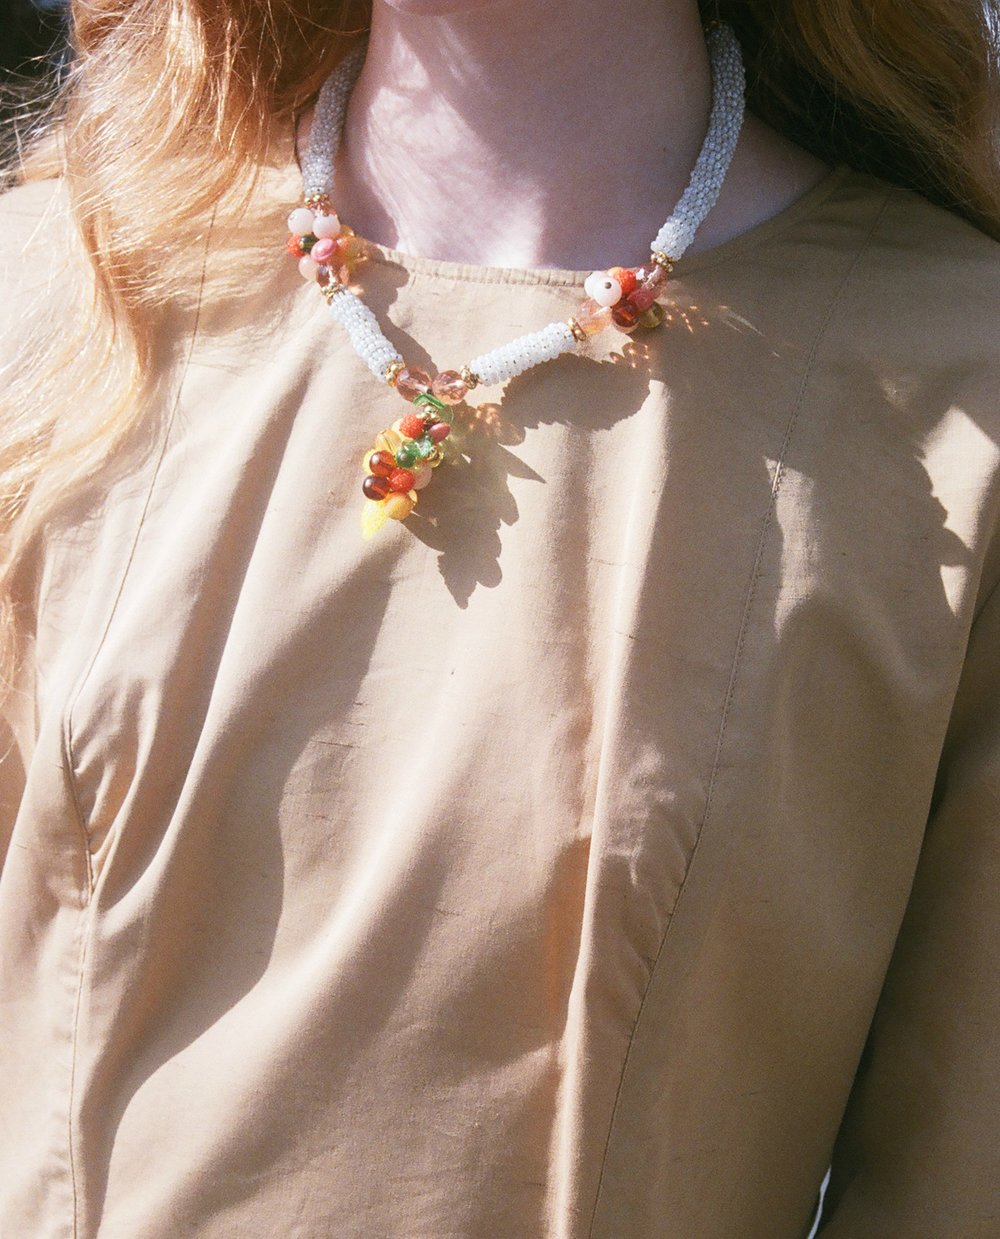 fruit bundle necklace .jpg